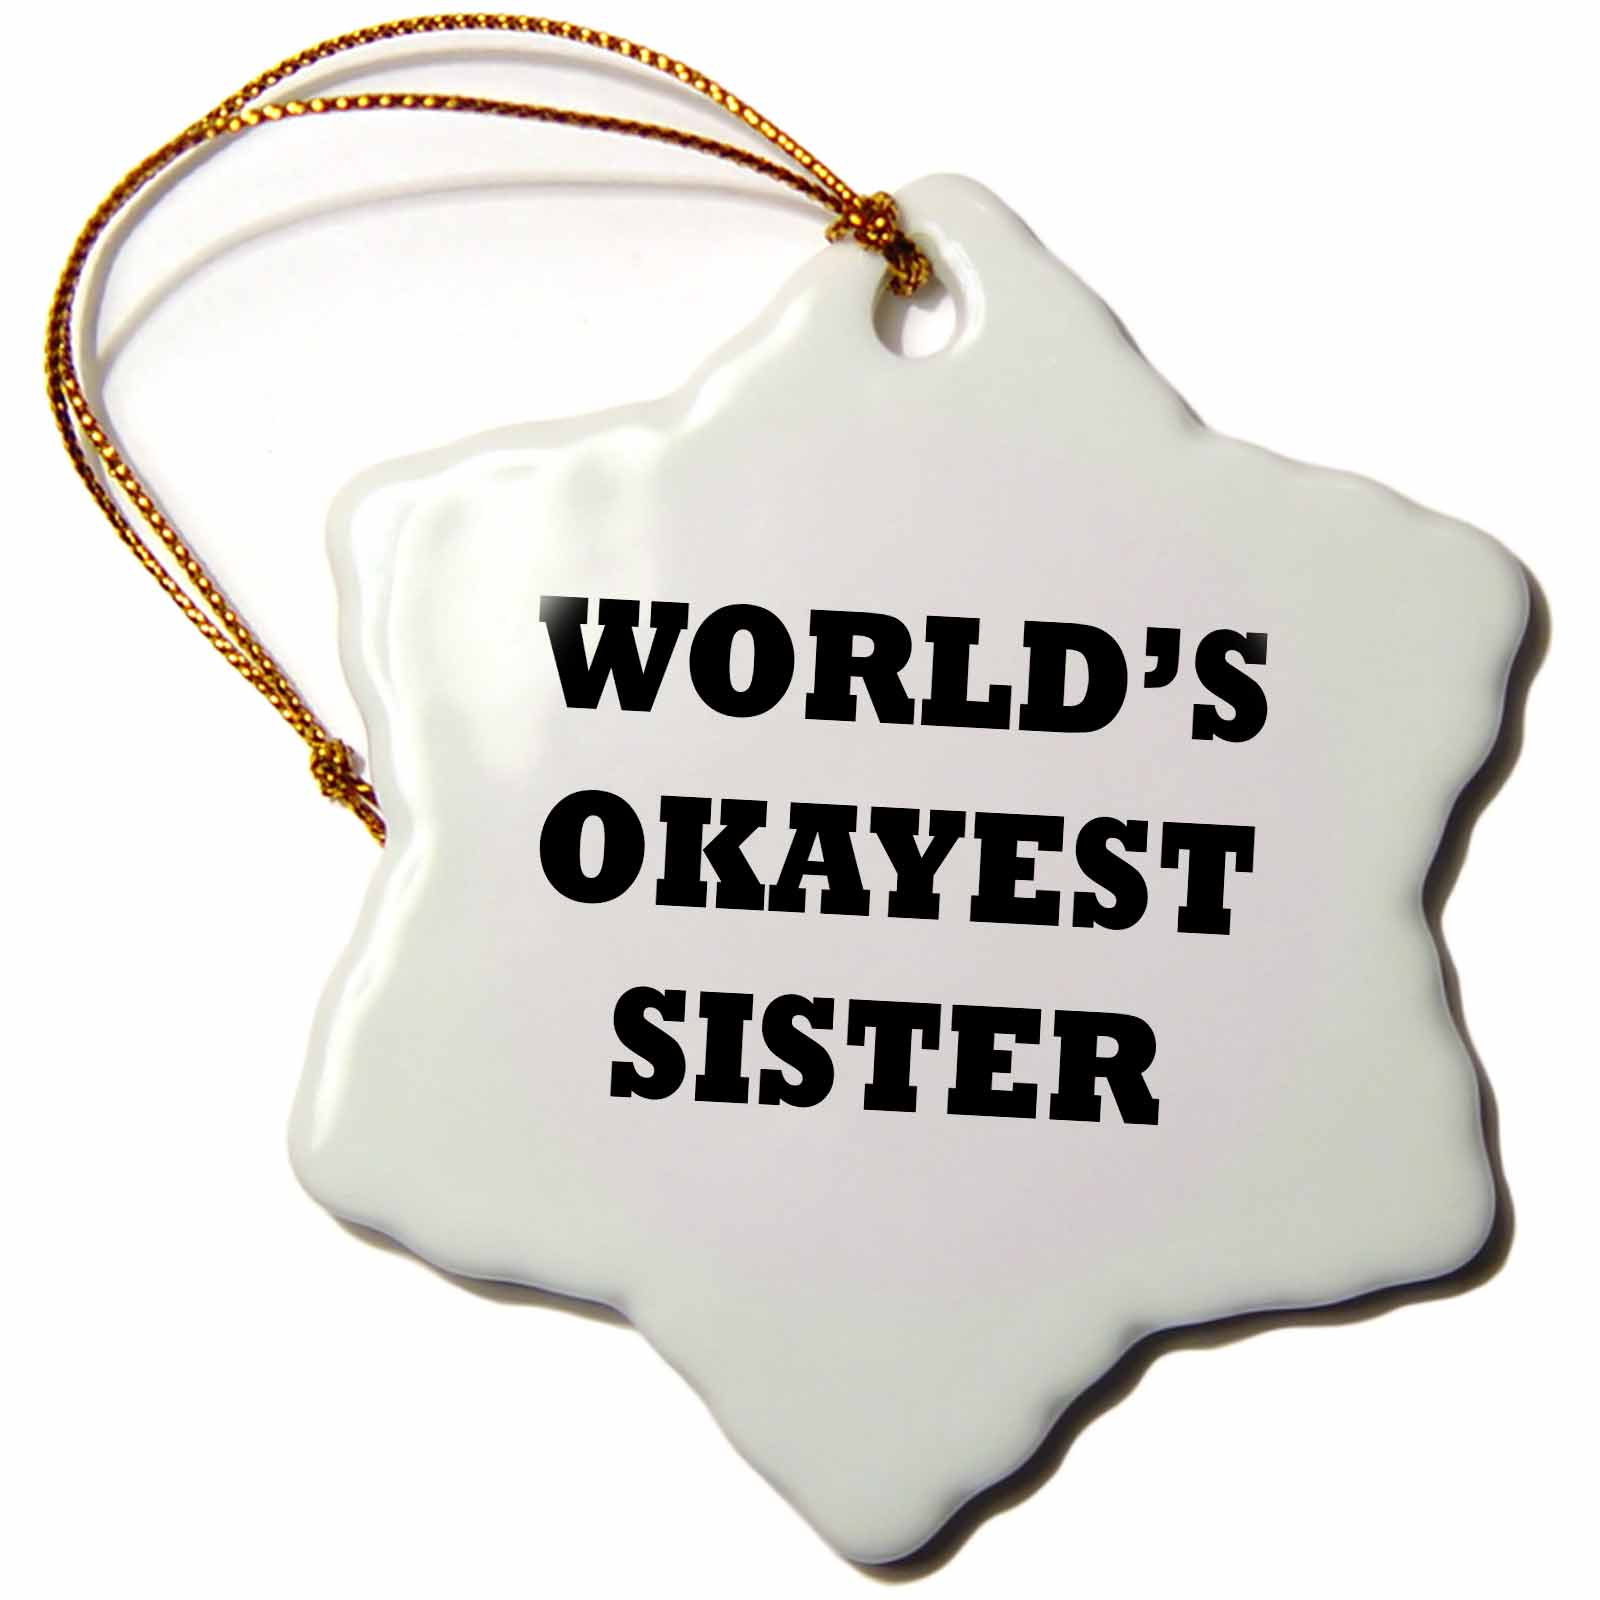 3dRose WORLDS OKAYEST SISTER, Snowflake Ornament, Porcelain, 3-inch